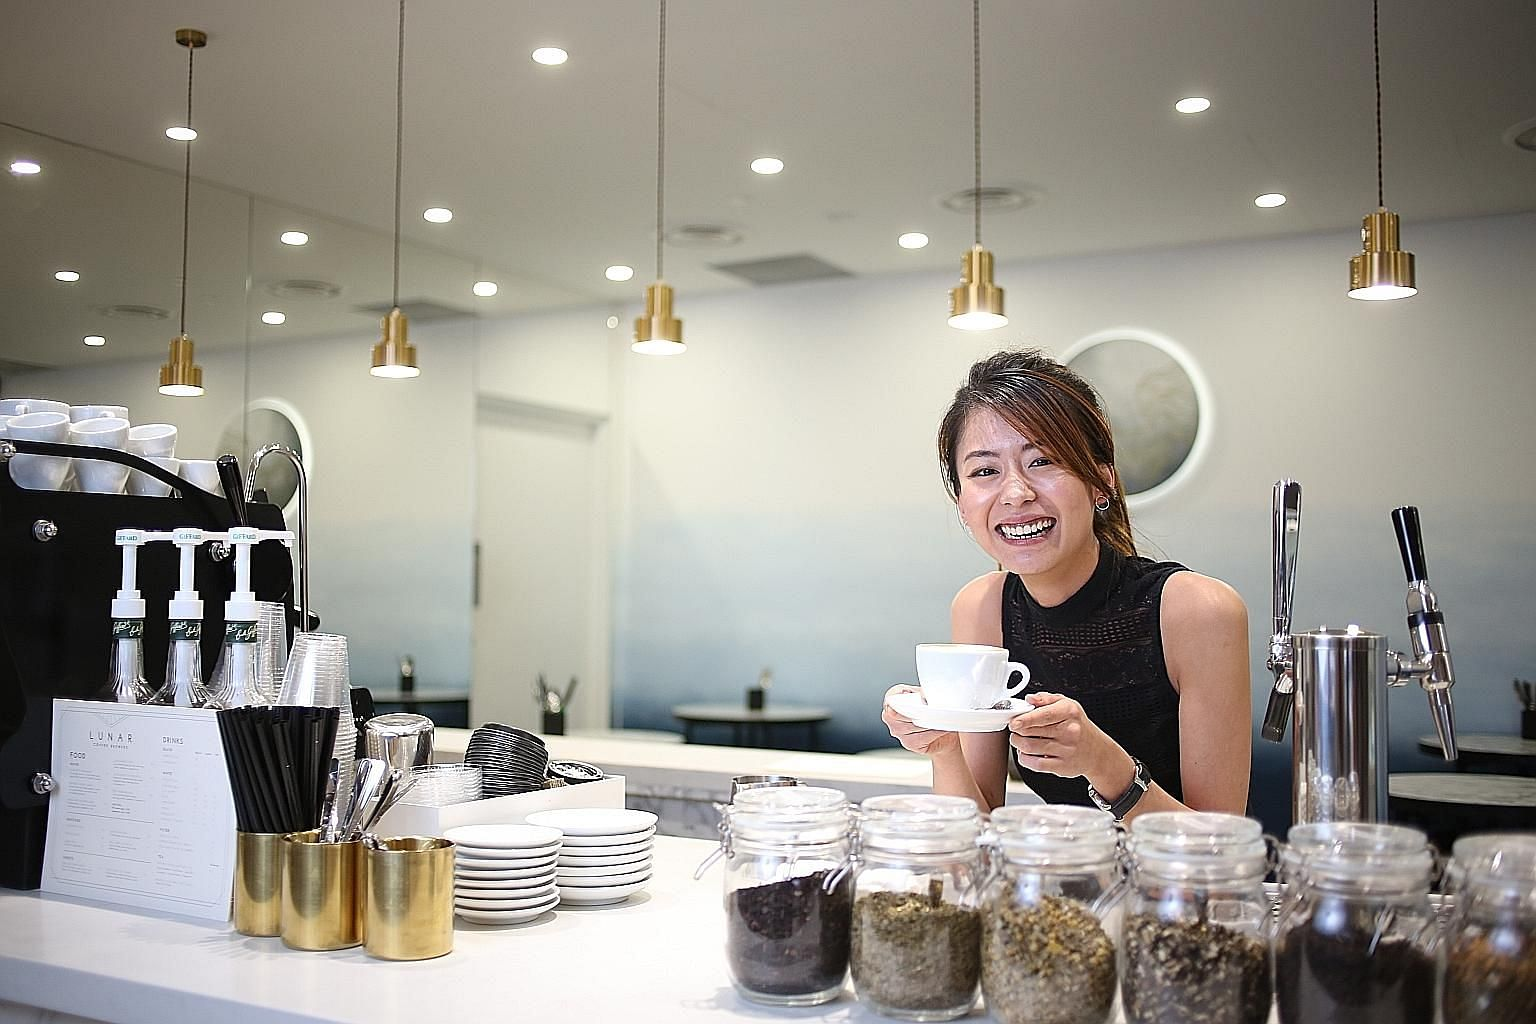 Ms Daphne Goh (above) opened Lunar Coffee Brewers this month at Downtown Gallery, where food and beverage concepts make up 30 per cent of the tenant mix.